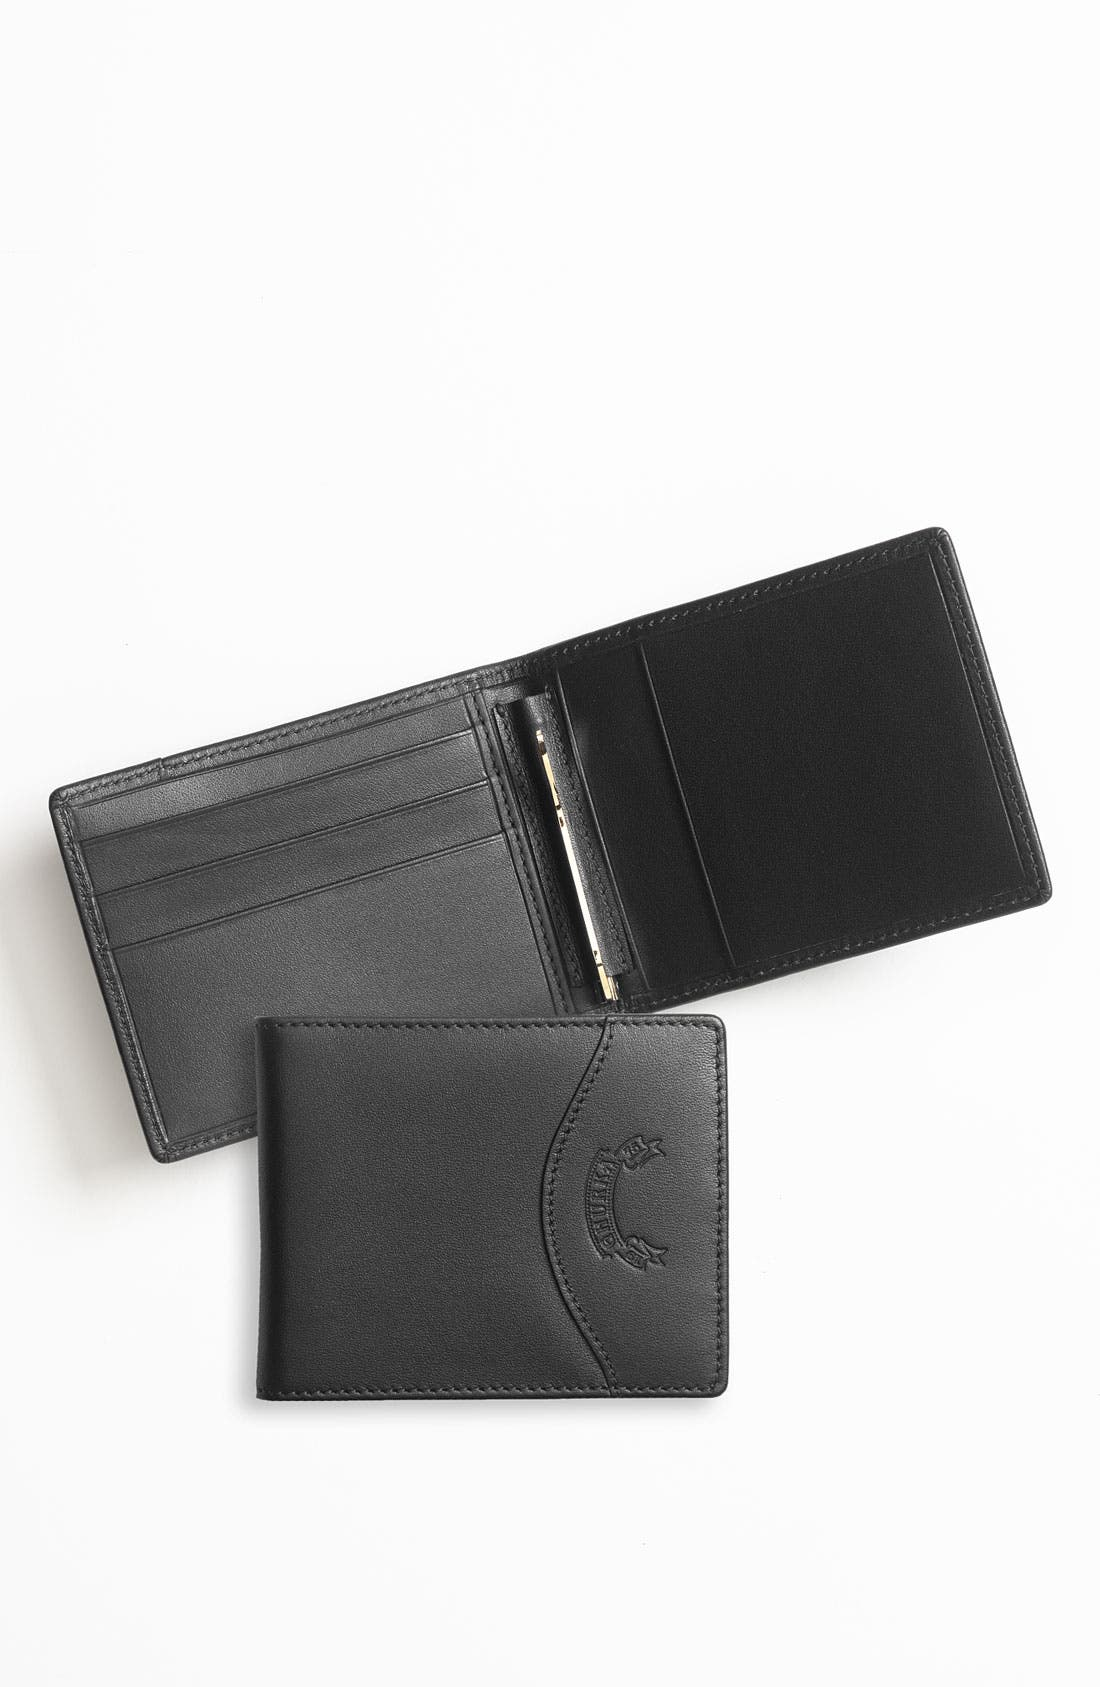 Main Image - Ghurka Leather Money Clip Wallet